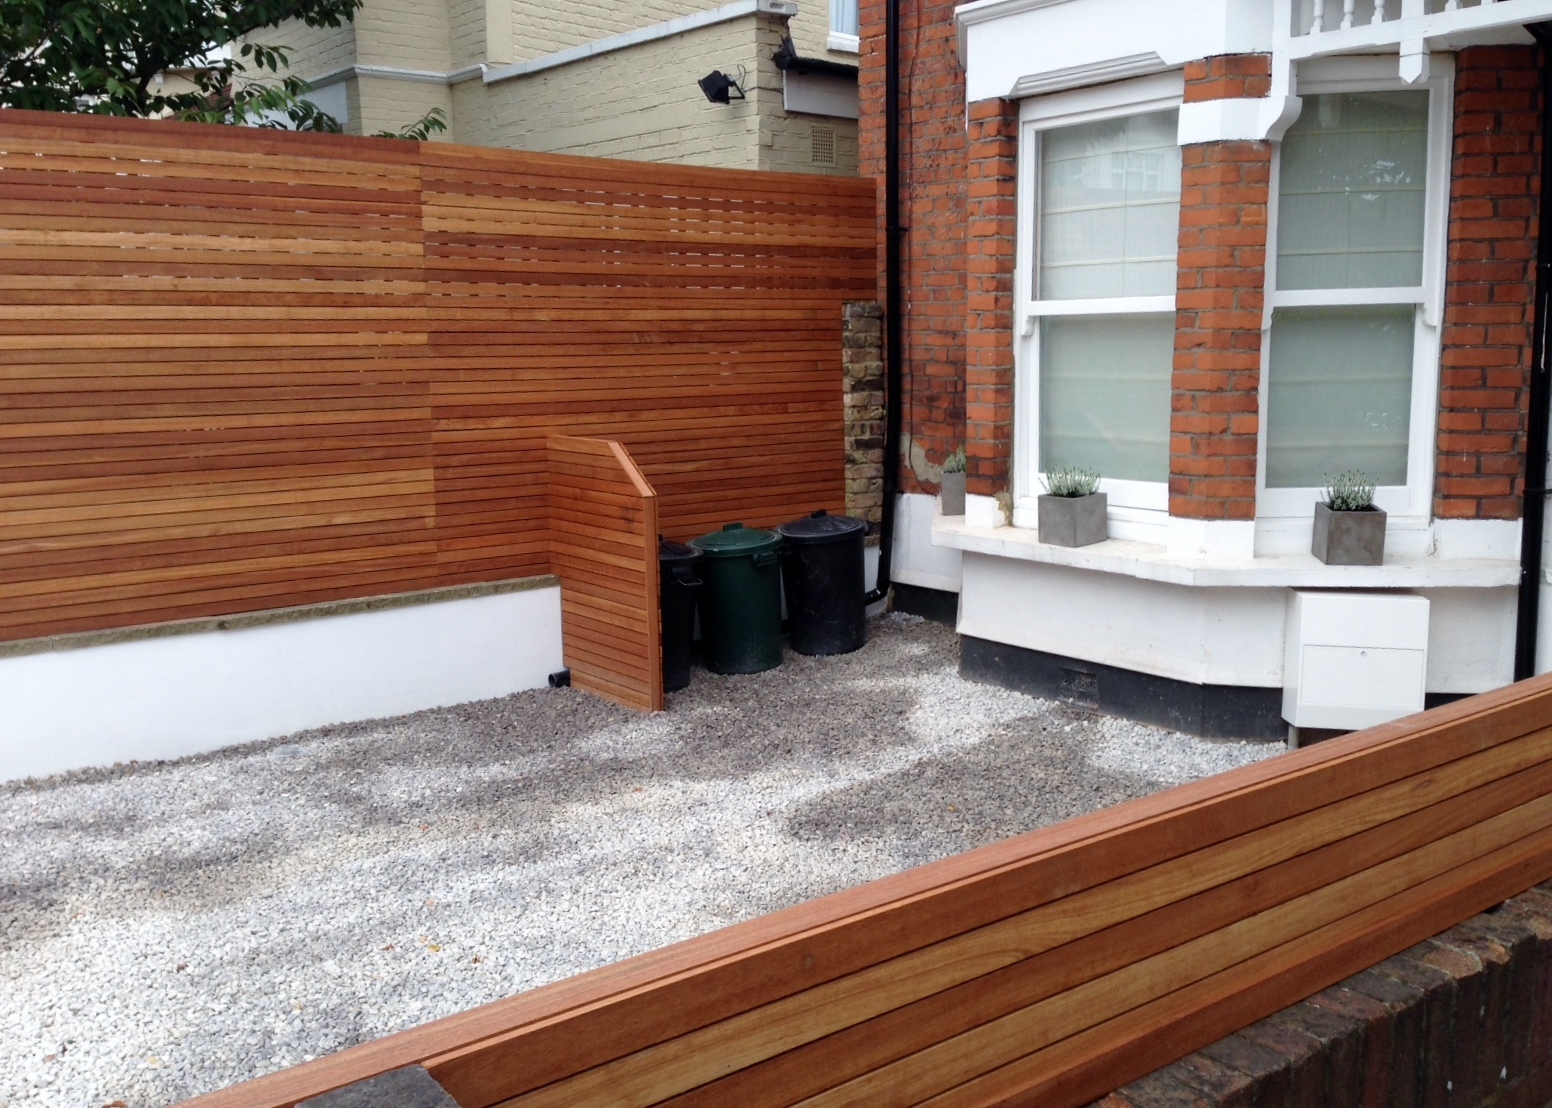 front garden drivewat gravel travertine paving path hardwood privacy screen trellis tooting london (18)